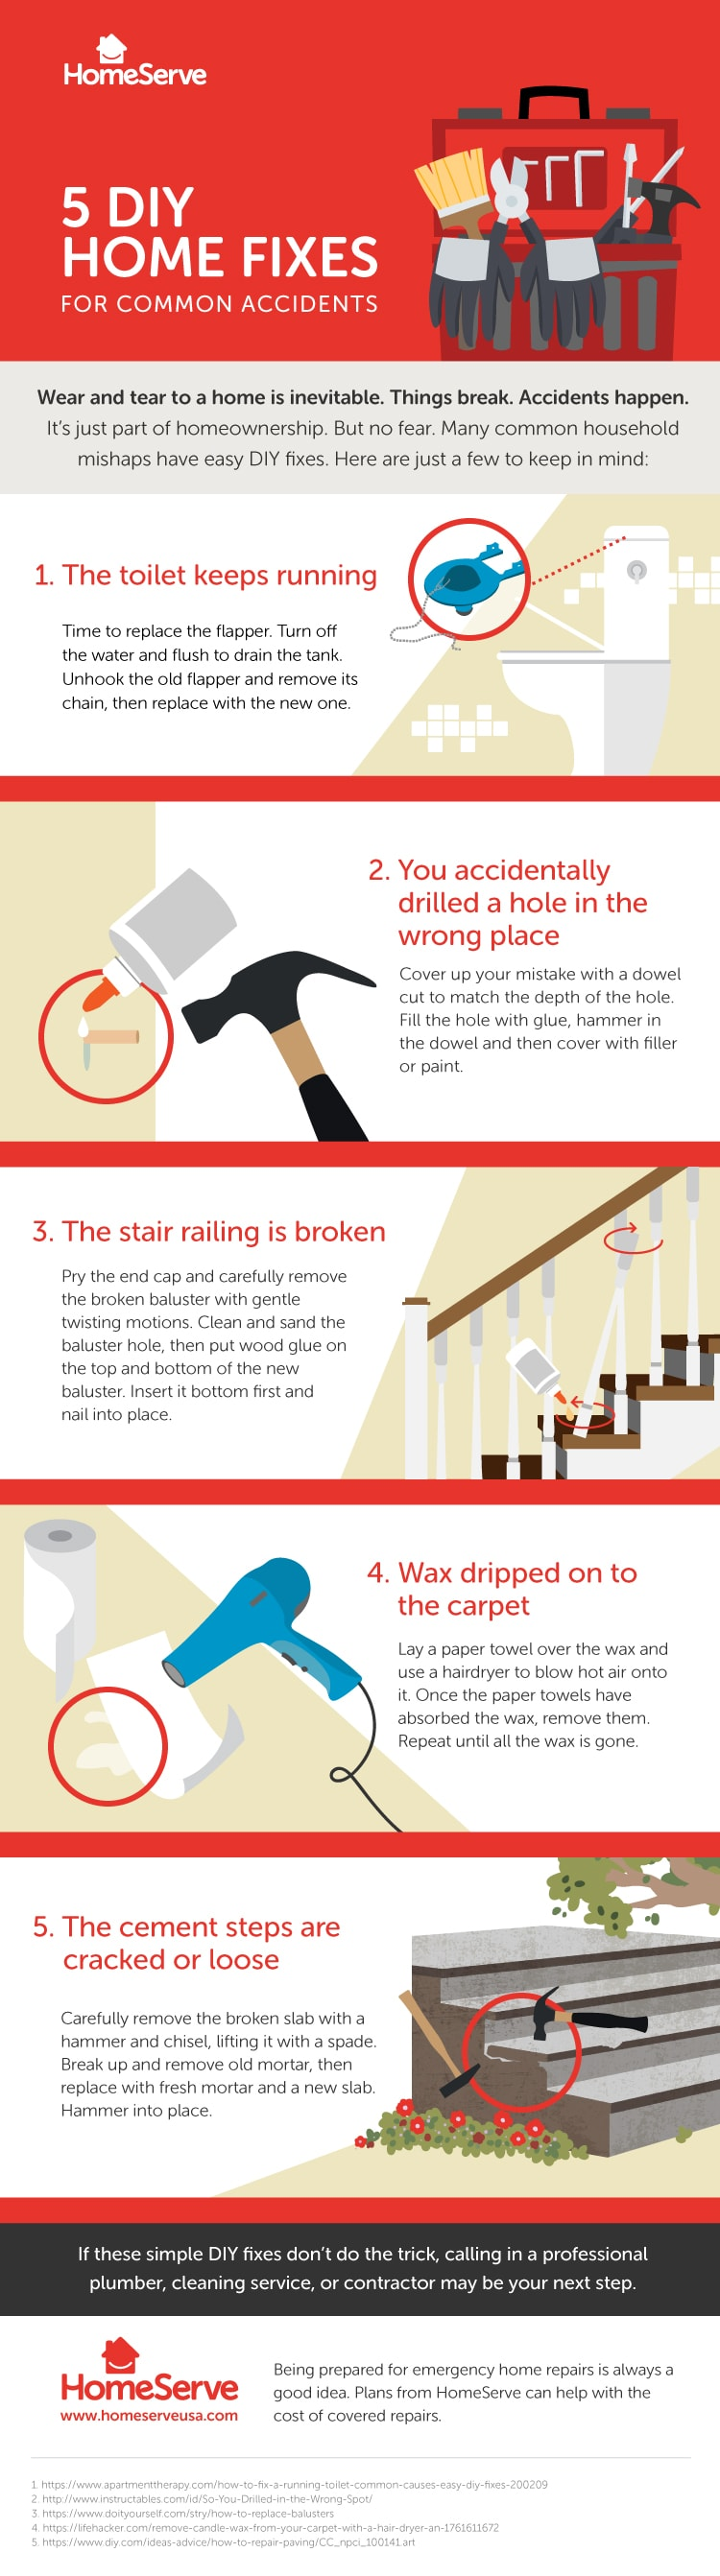 5 DIY home fixes for common accidents